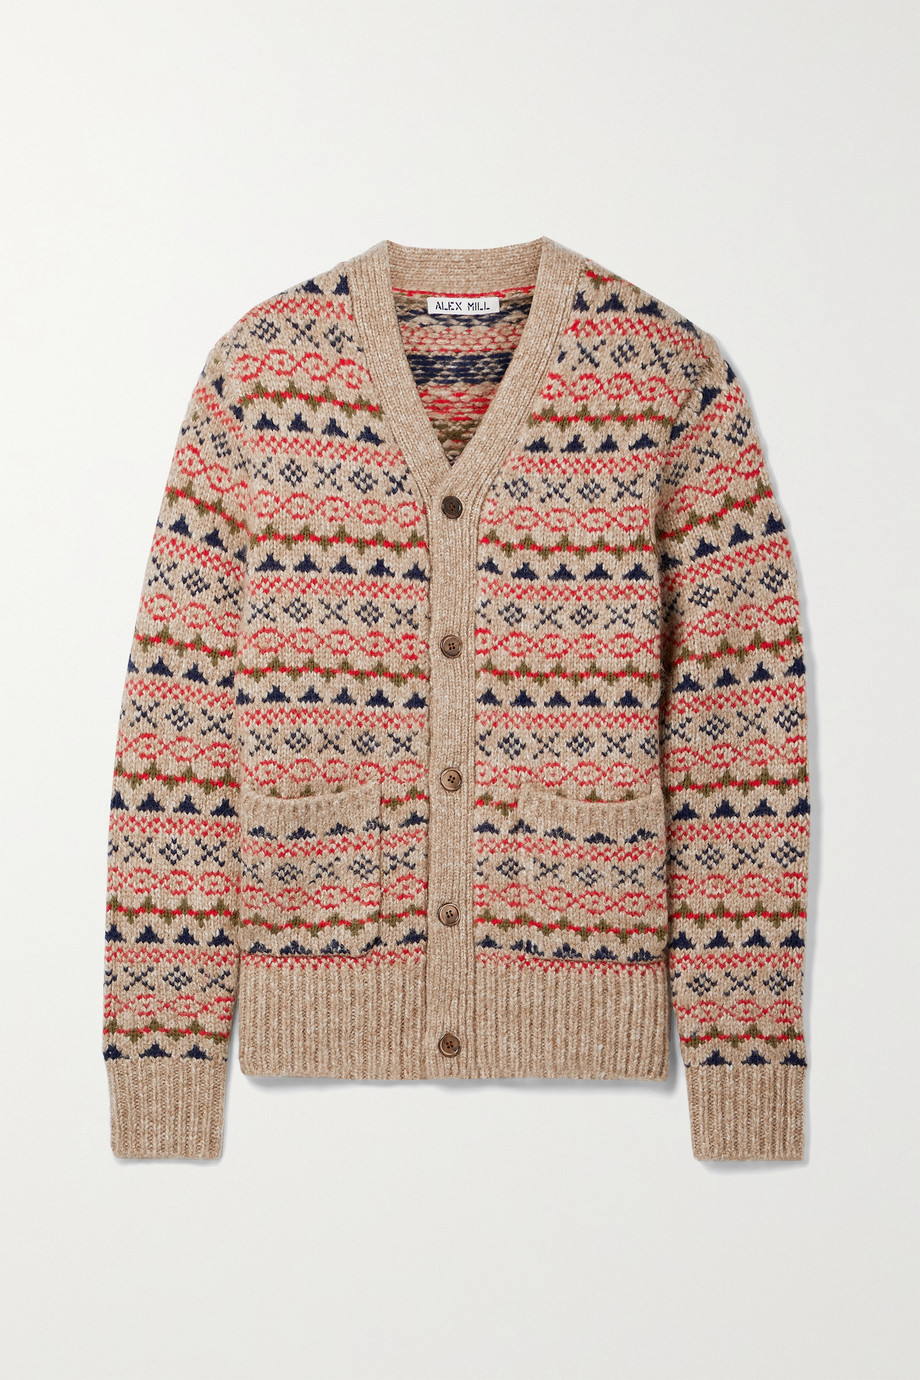 Alex Mill Fair Isle knitted cardigan